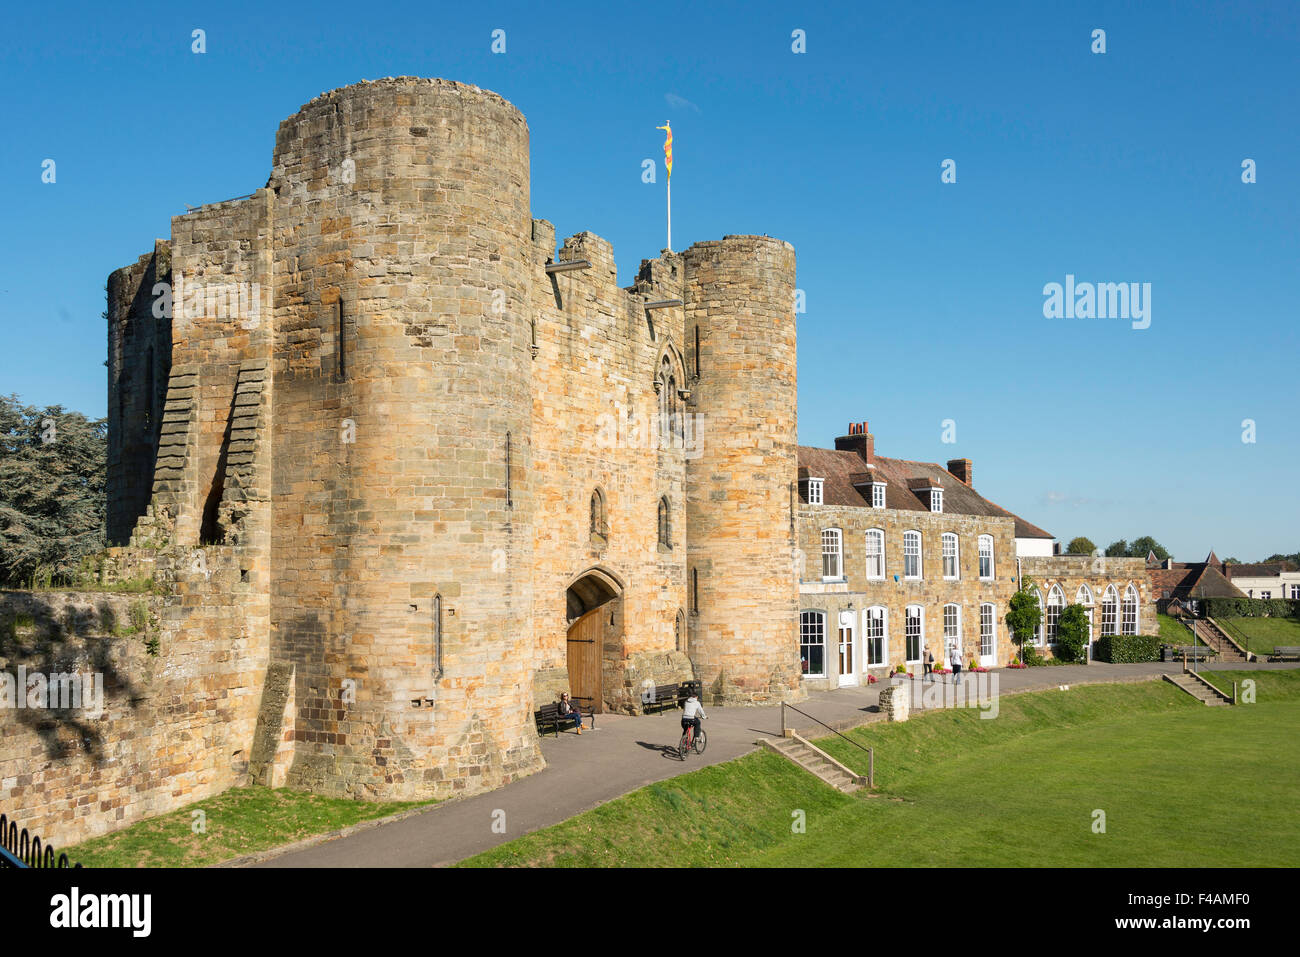 The Gatehouse, Tonbridge Castle, Tonbridge, Kent, England, United Kingdom - Stock Image